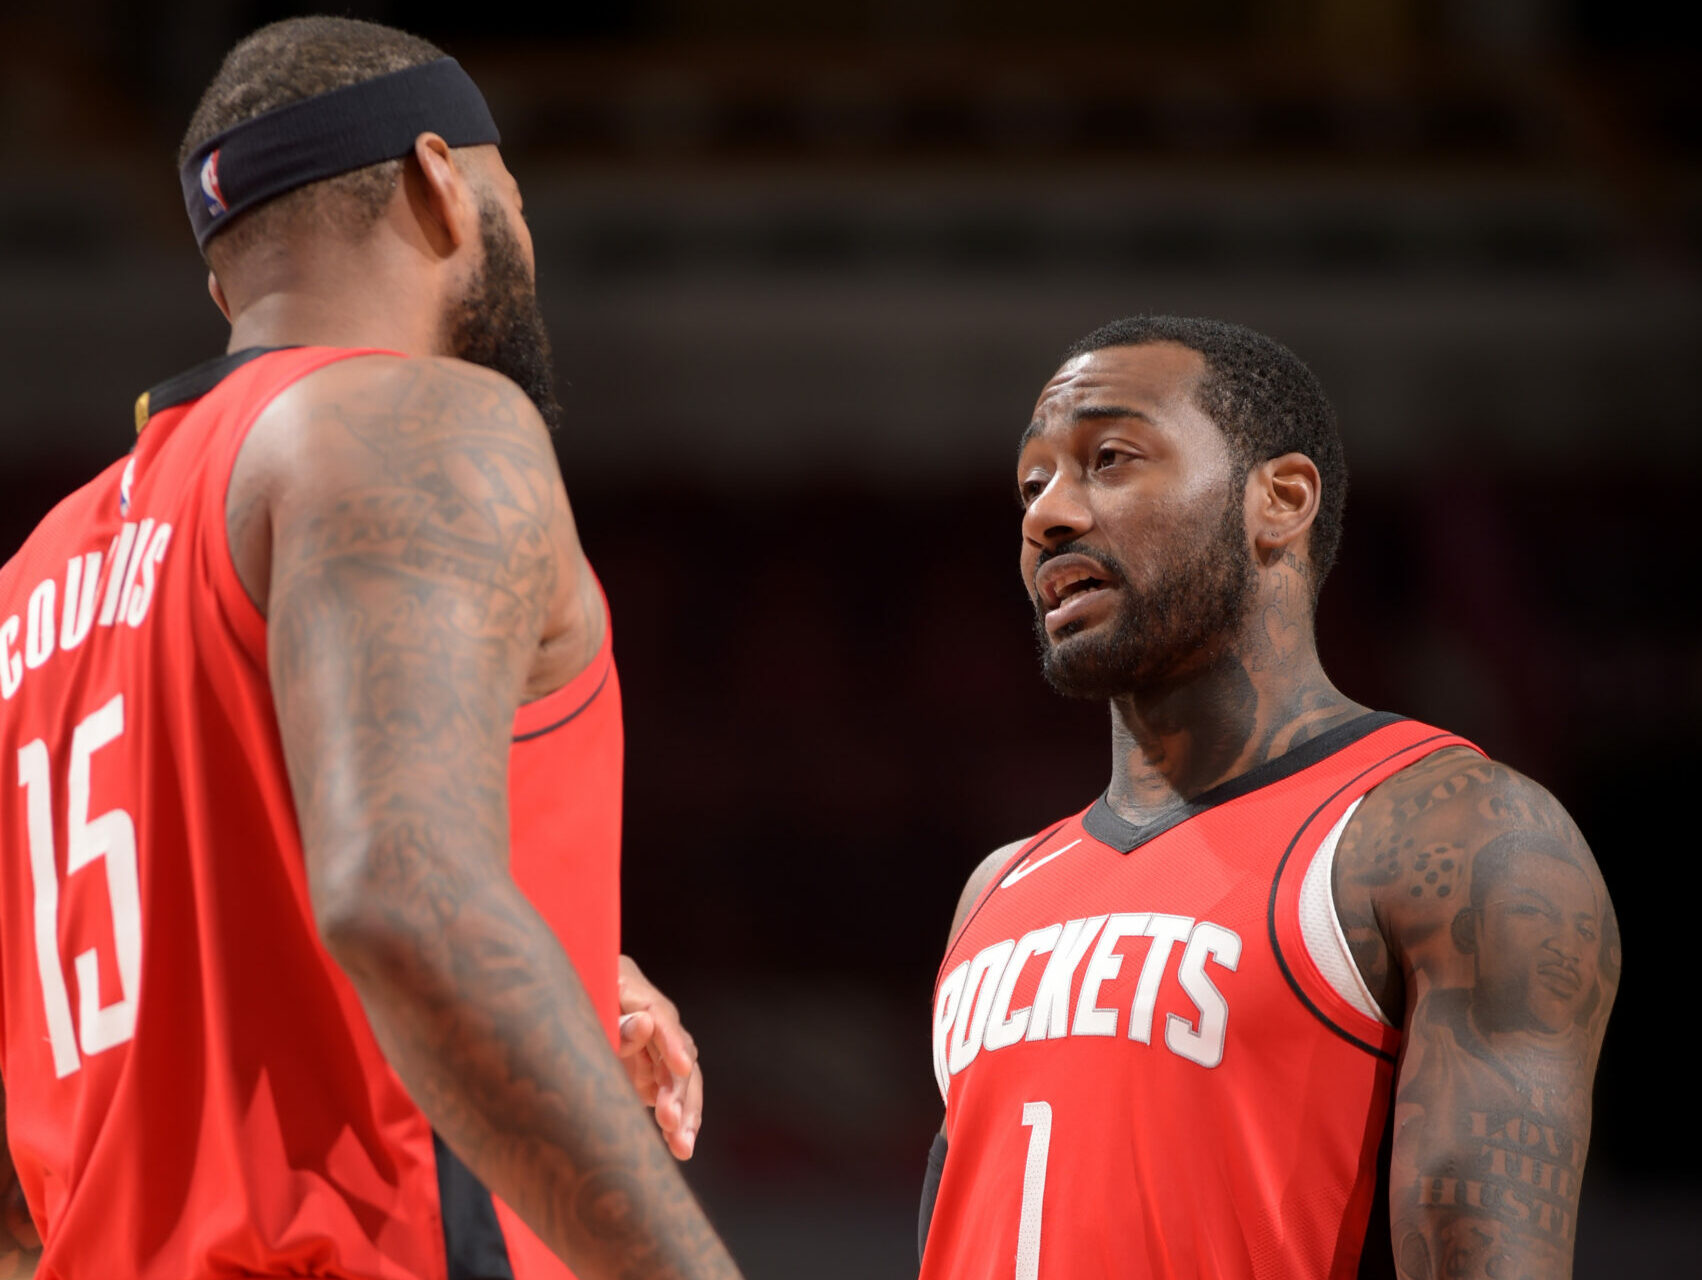 John Wall, DeMarcus Cousins to make Rockets debut vs. Kings